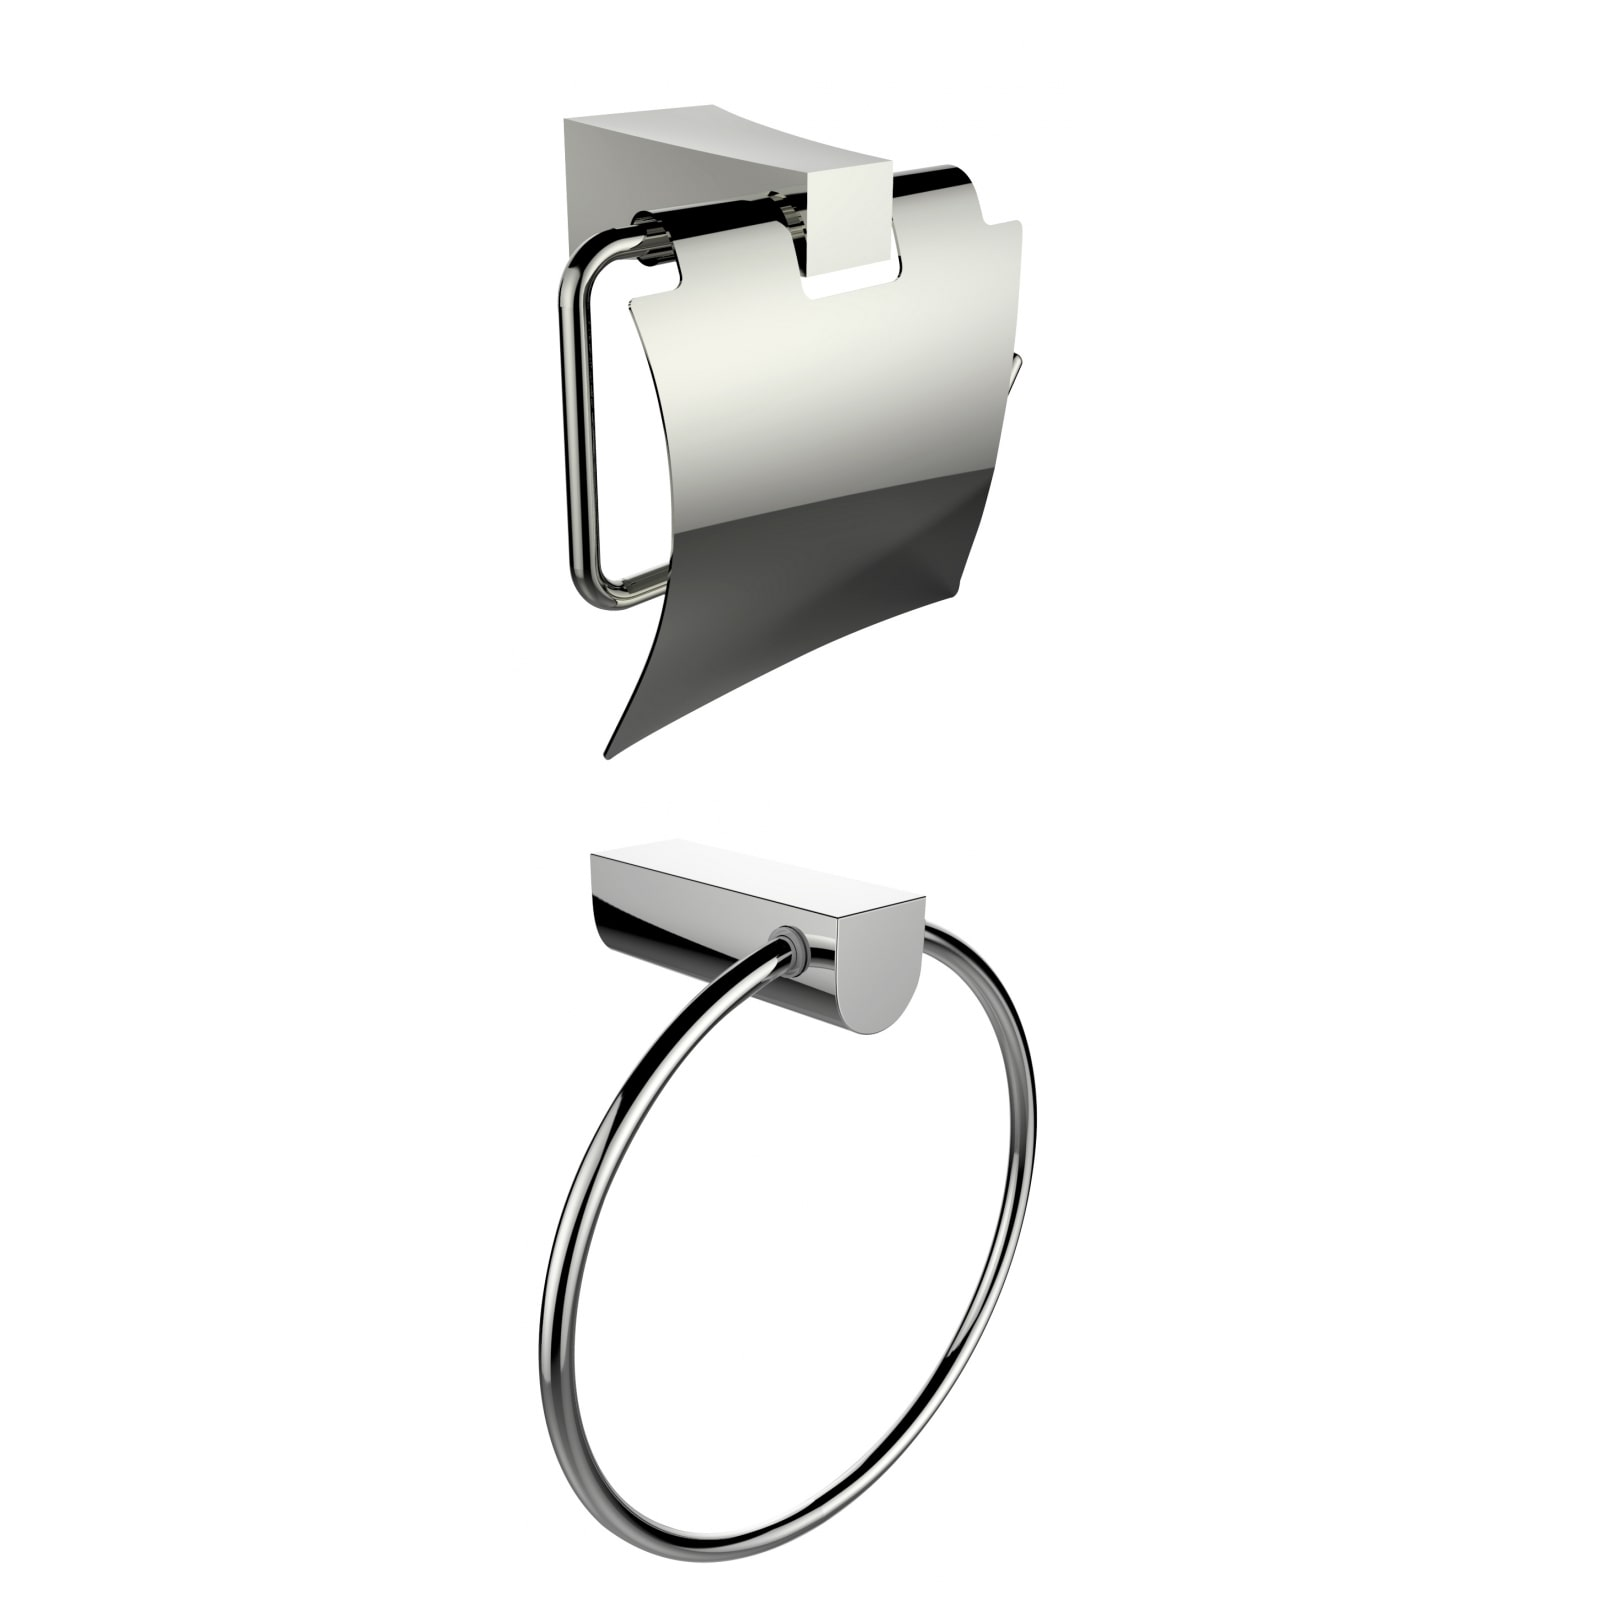 American IMaginations Chrome Plated Towel Ring With Toilet Paper Holder Accessory Set by Overstock